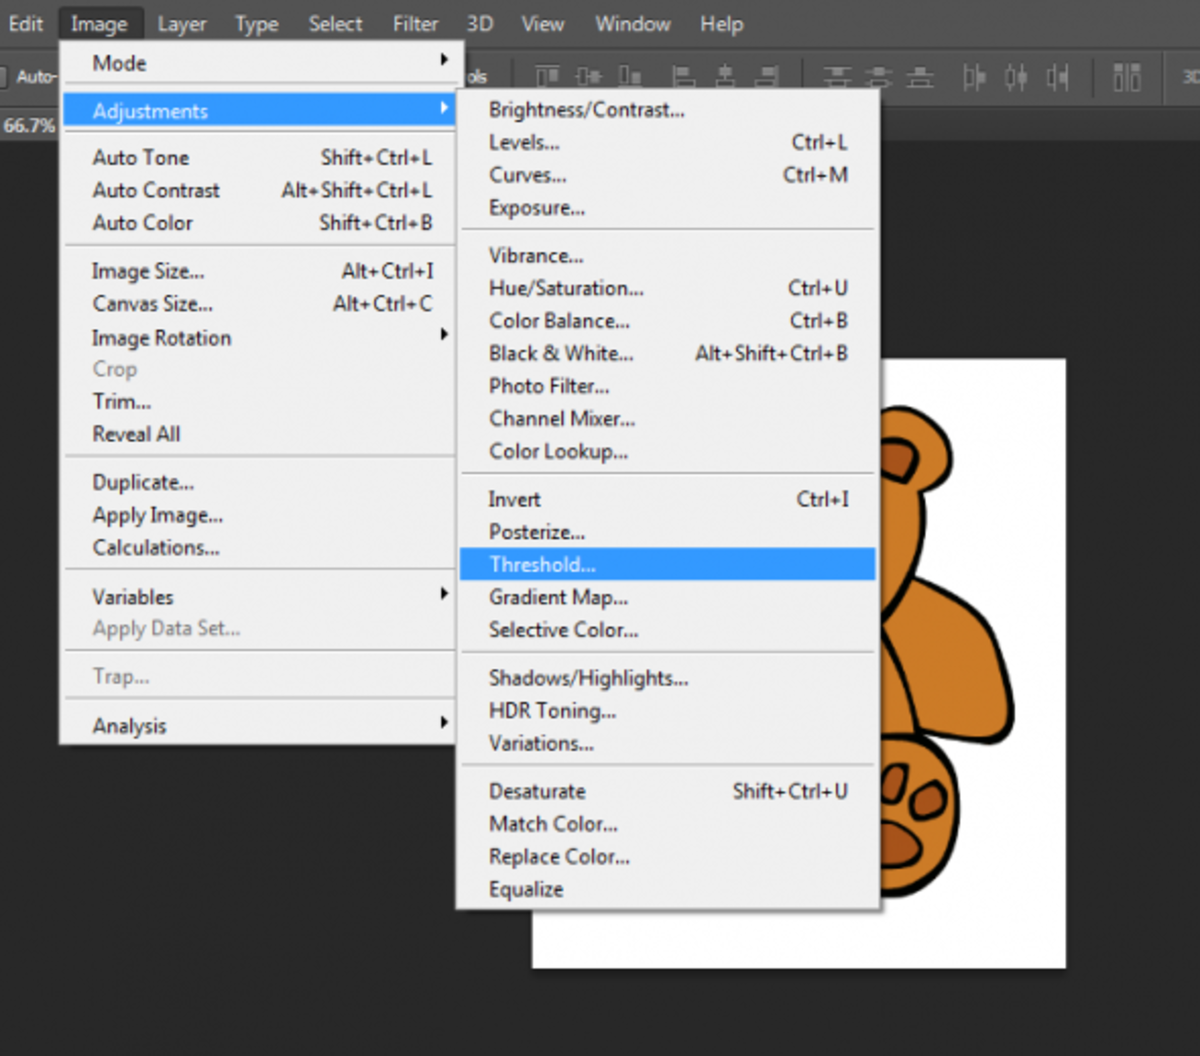 image threshold menu in photoshop